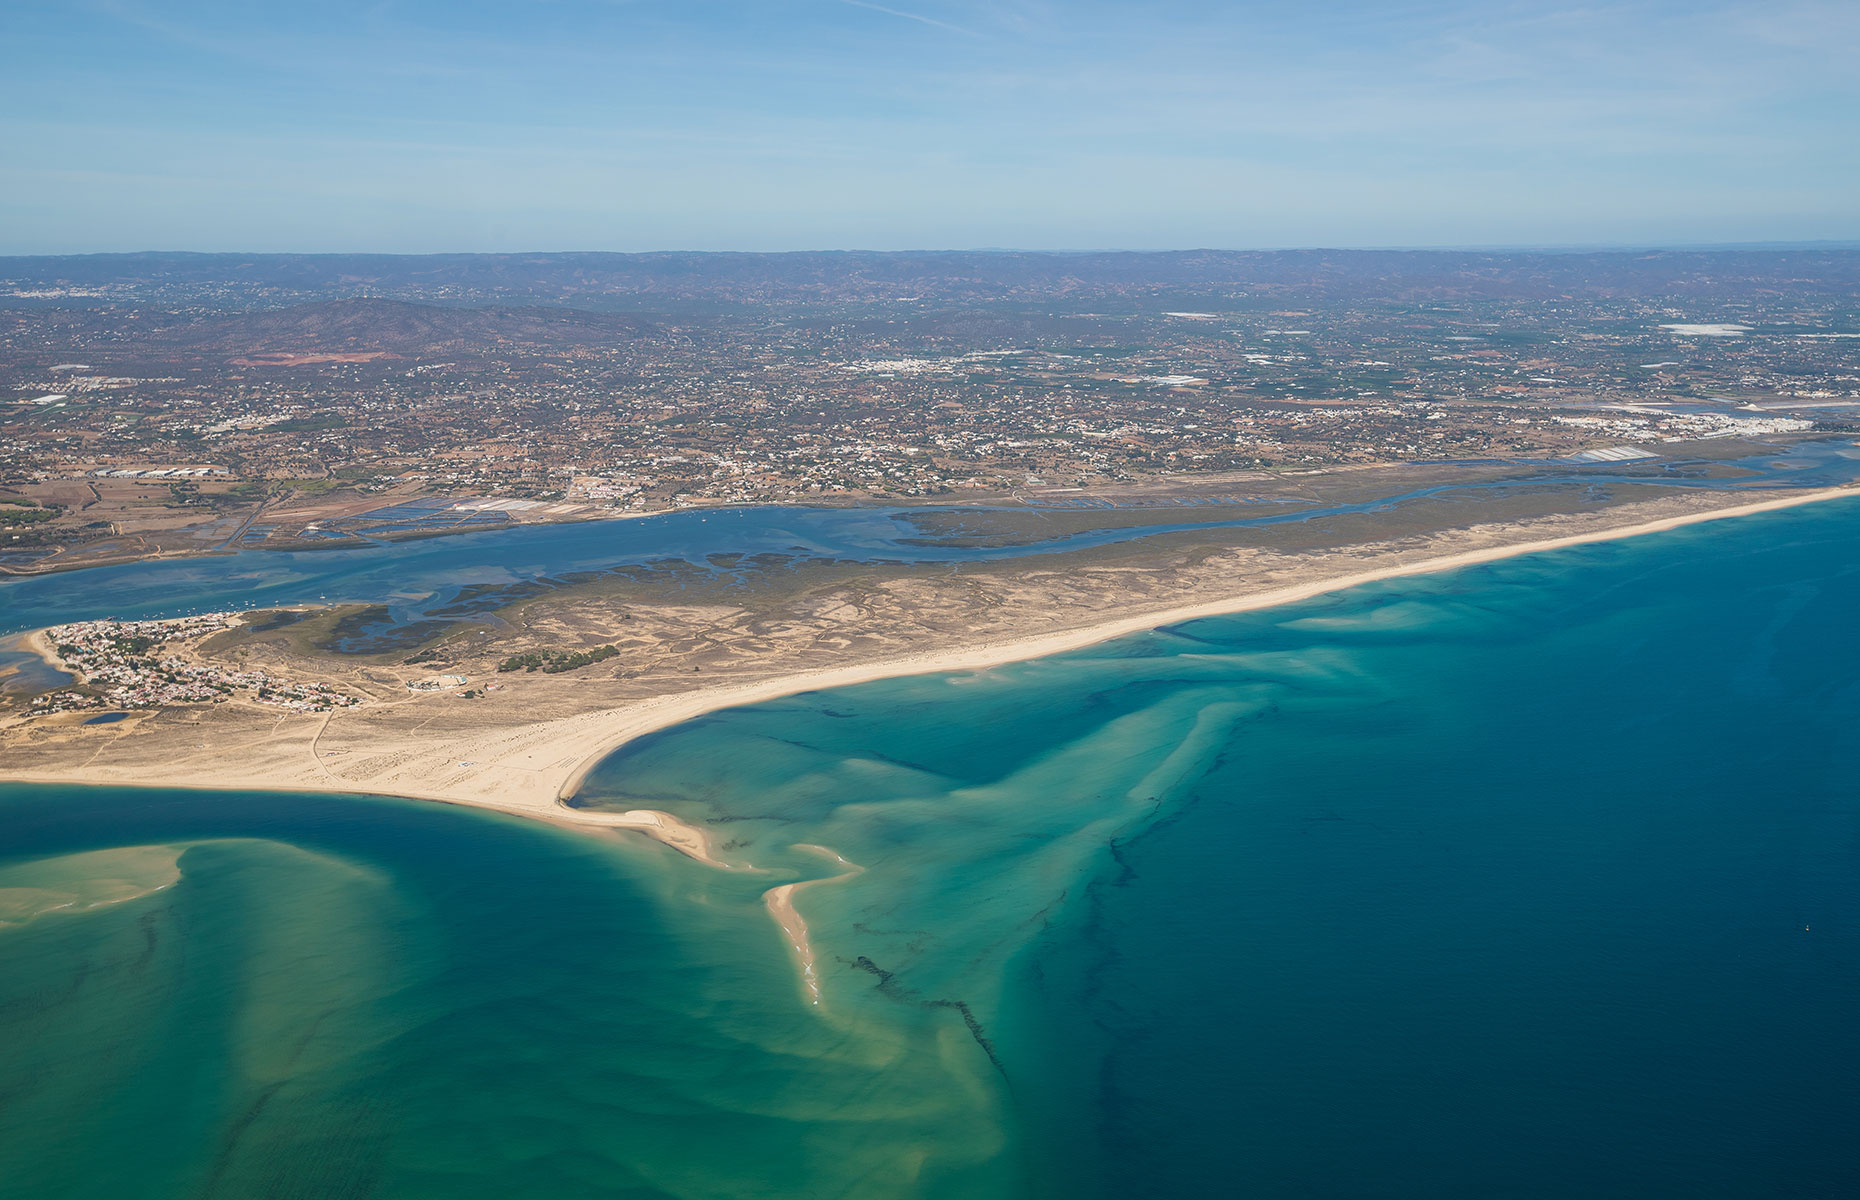 Aerial view of the Ria Formosa, Portugal (Image: Heinz Schulte/Shutterstock)